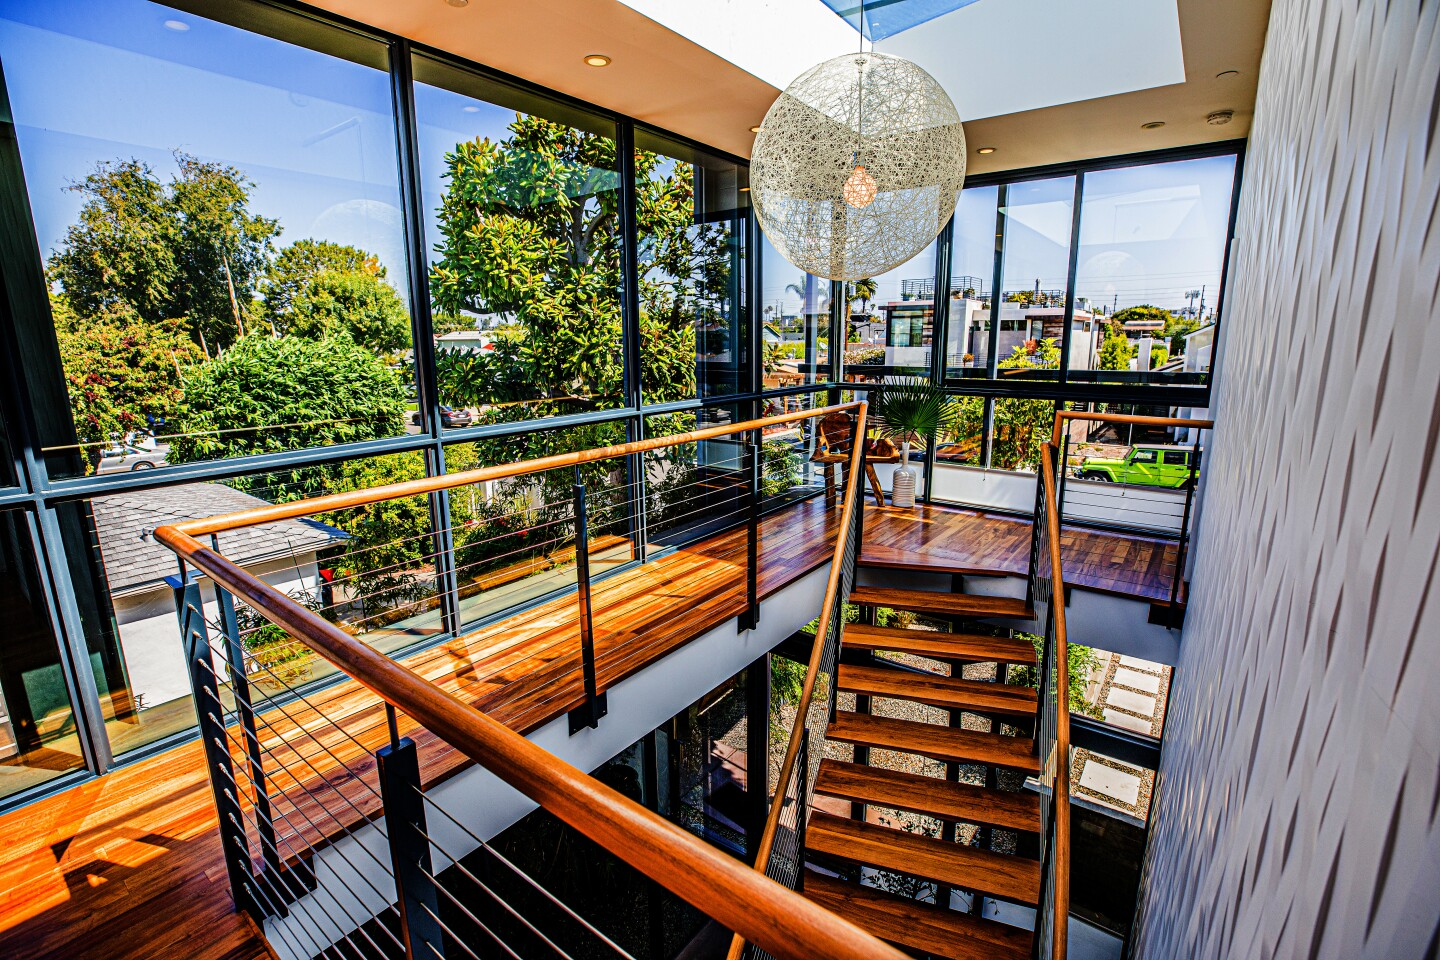 Home of the Week | The hanging gardens of Venice